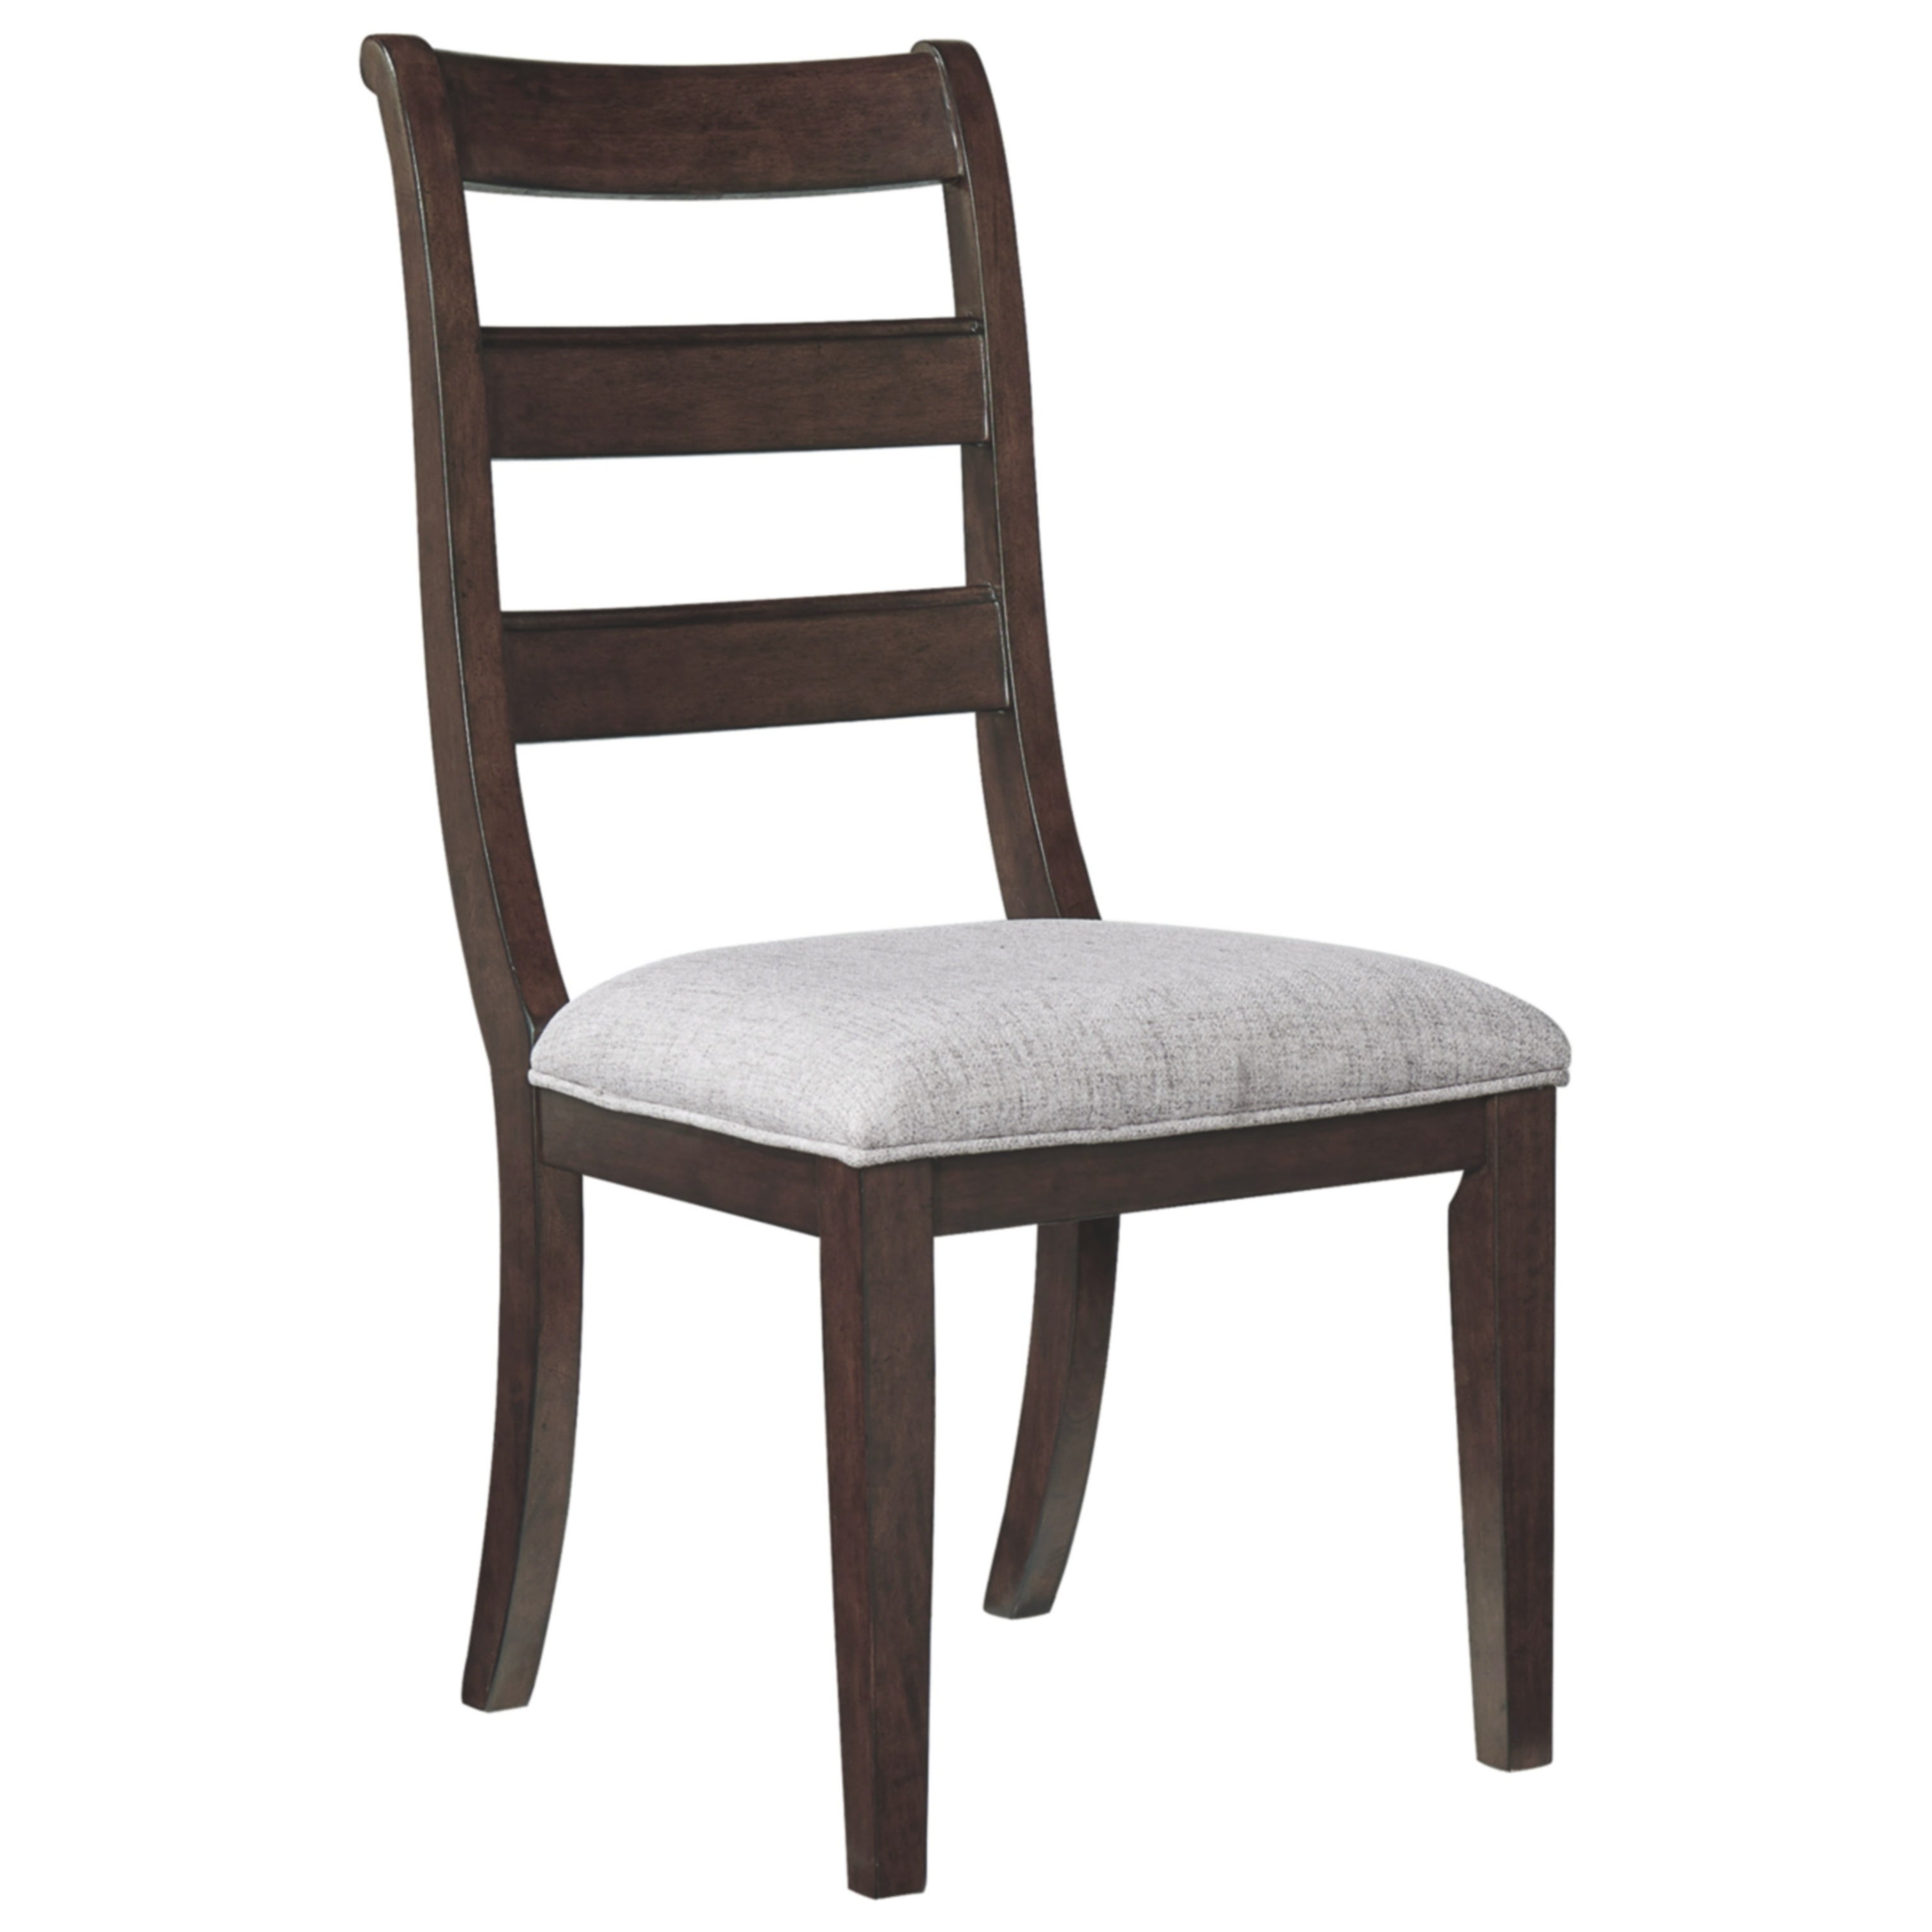 Adinton Dining Upholstered Side